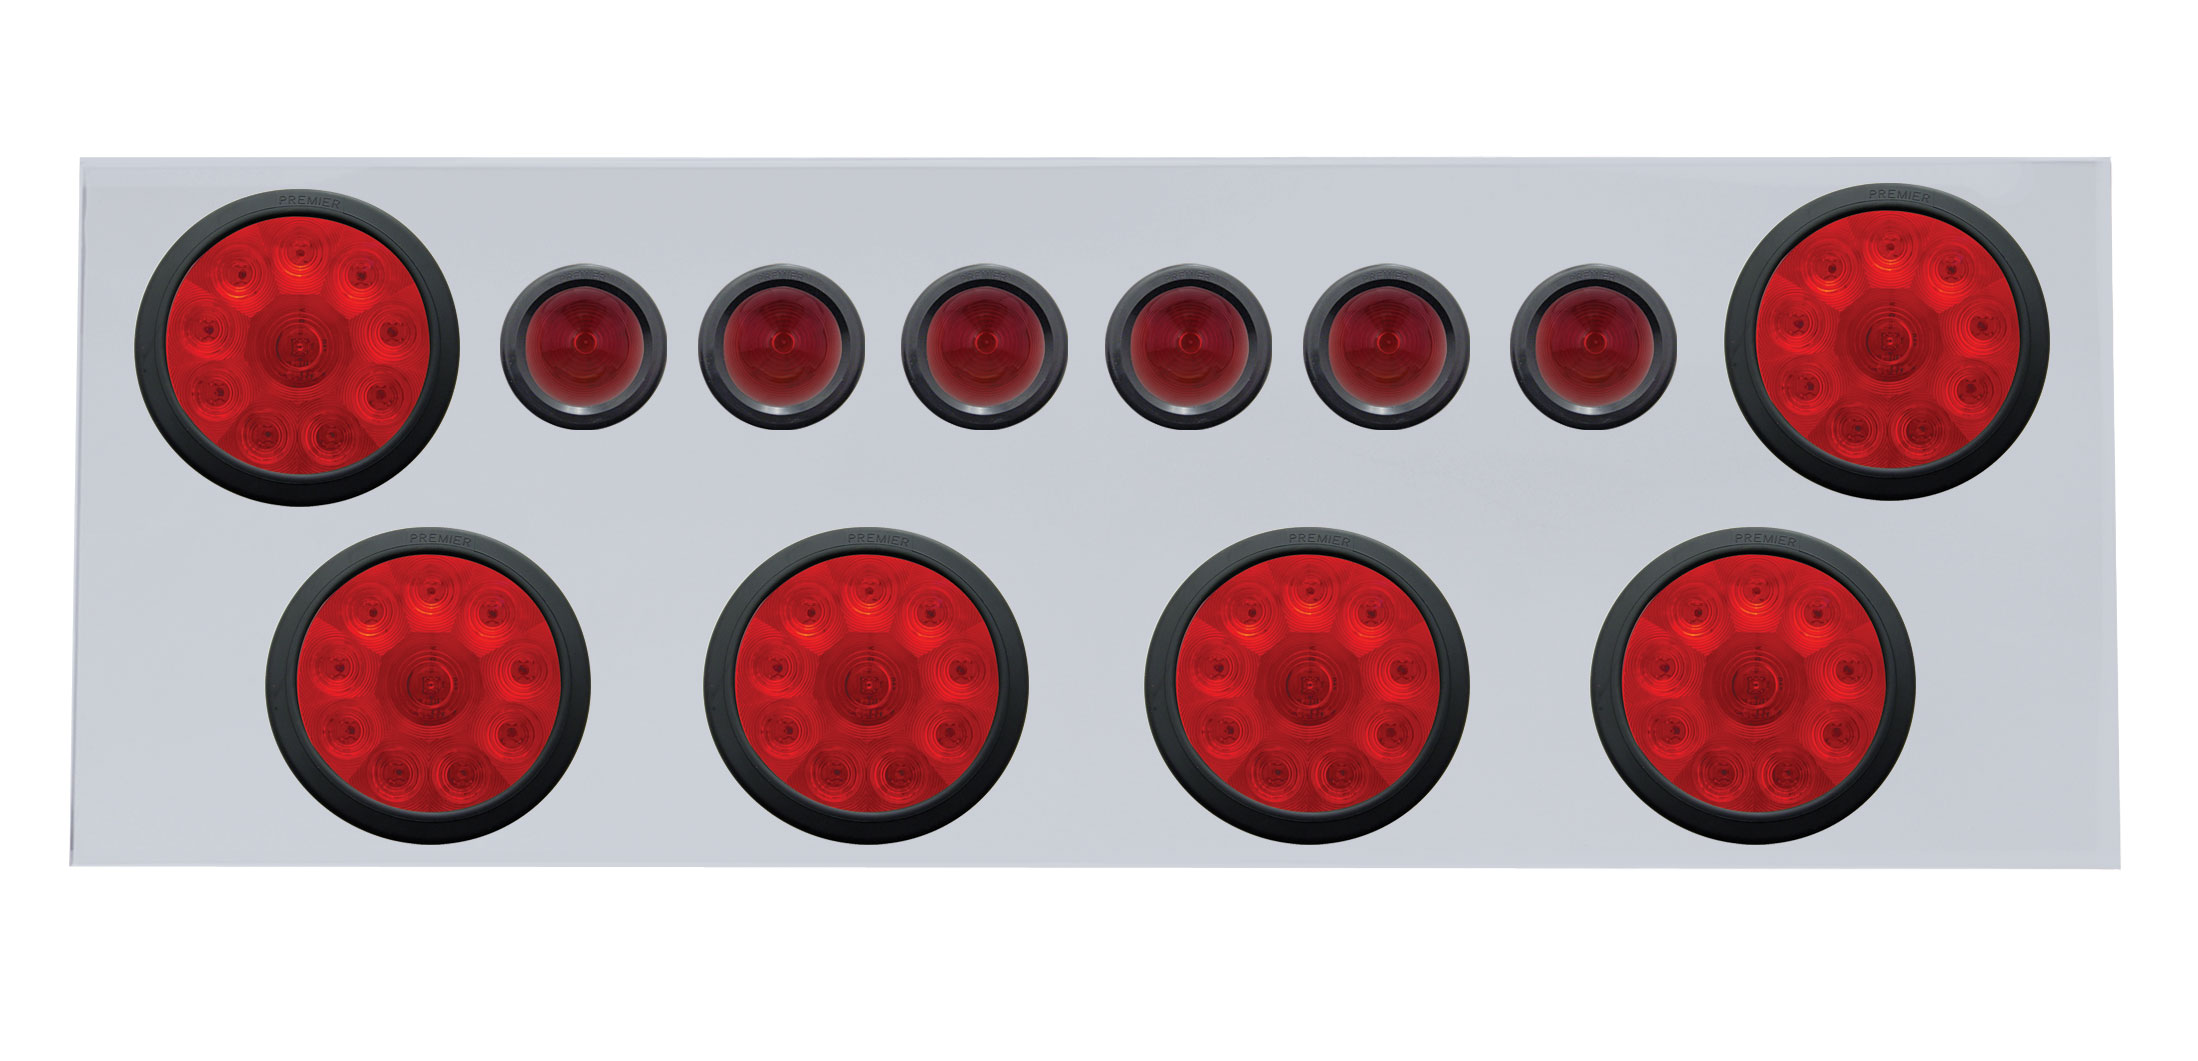 "Stainless Steel Rear Center Light Panel W/ Six 10 Led 4"" & 9 Led 2"" Beehive Light W/ Grommet - Red Led/Red Lens"